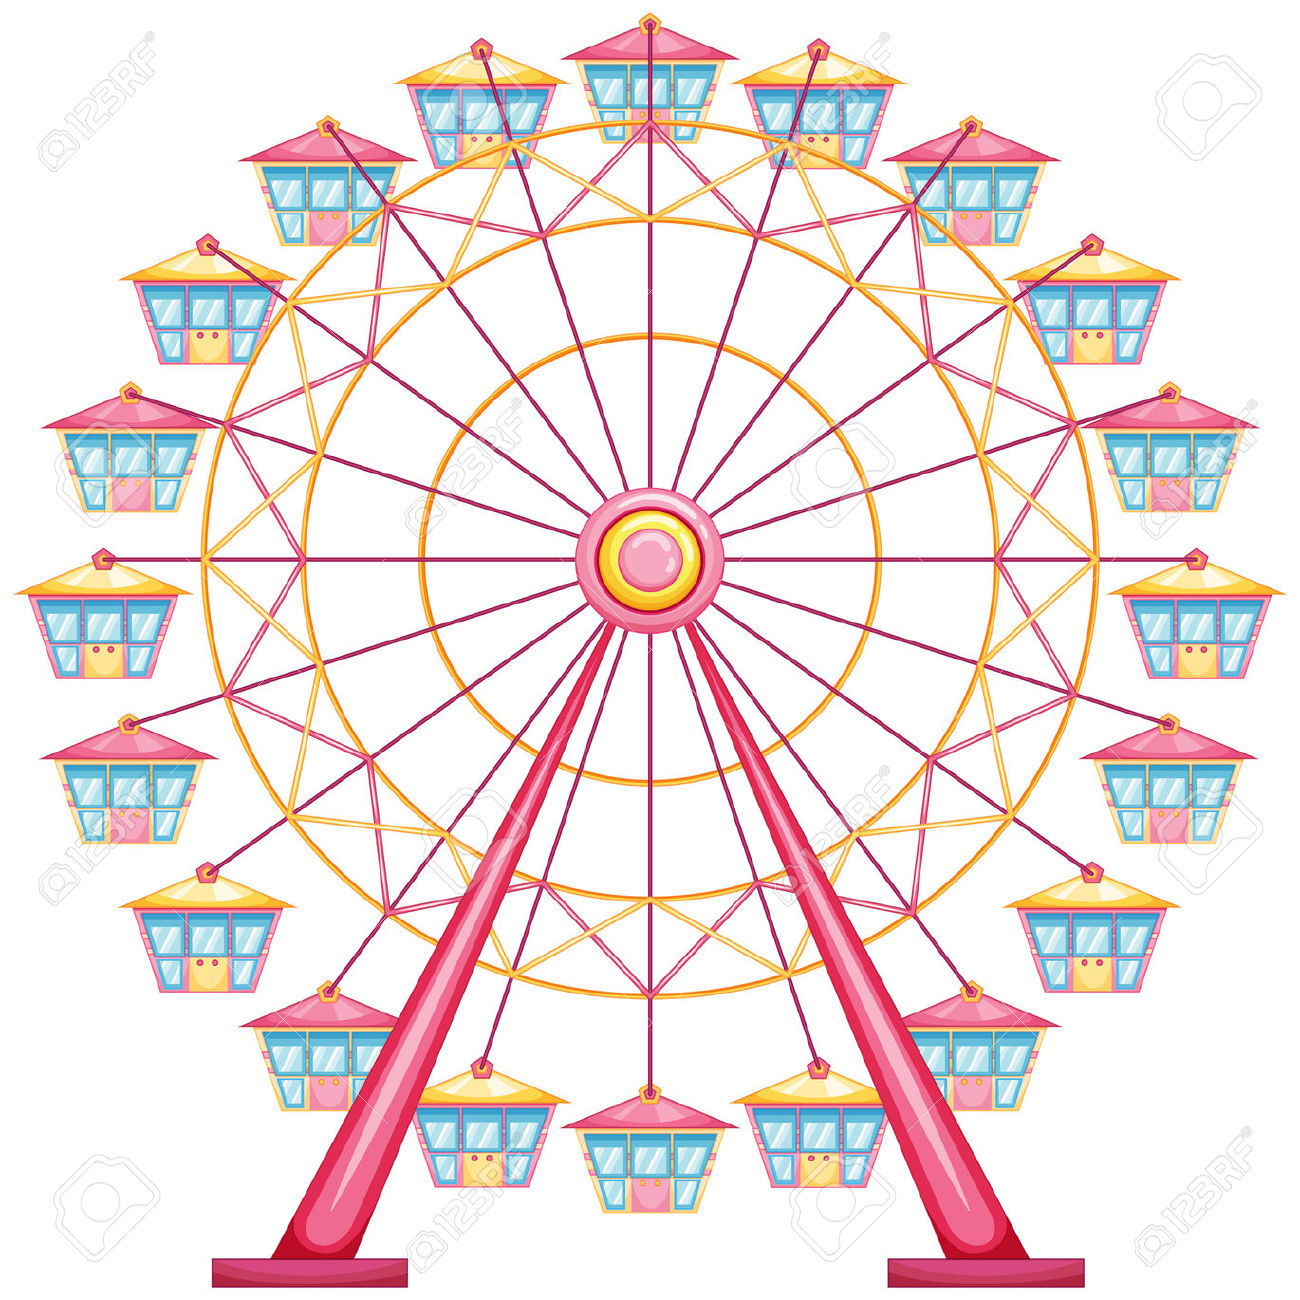 Ferris wheel clipart 2